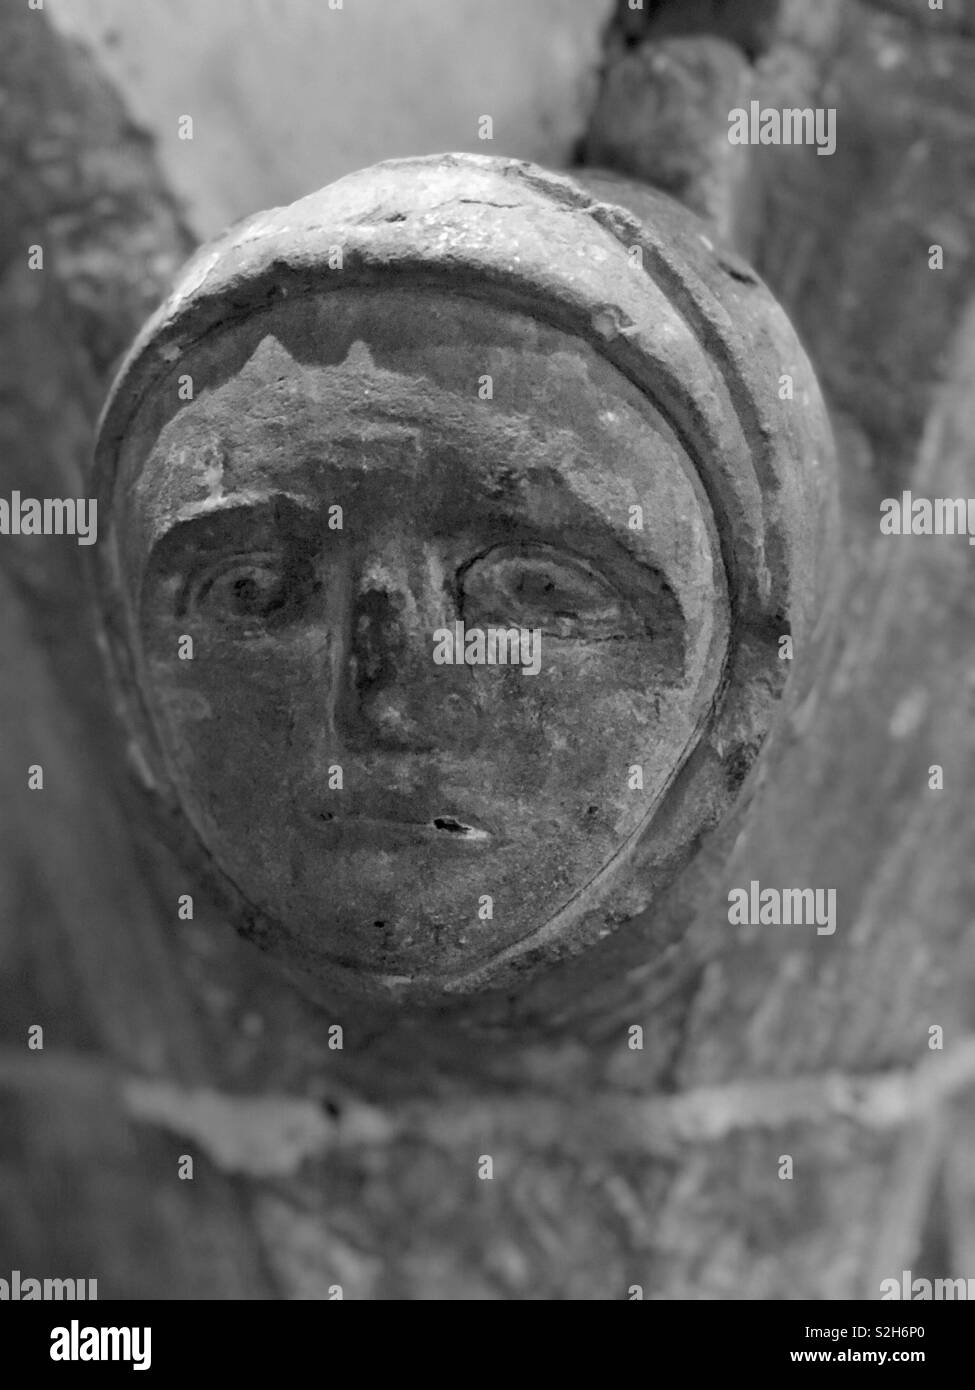 A sad and moving 13th or 14th Century sculpture probably representing remorse and sin and the figure has an enlarged eye an apparent disability also seen in portraits of Edward 1. - Stock Image